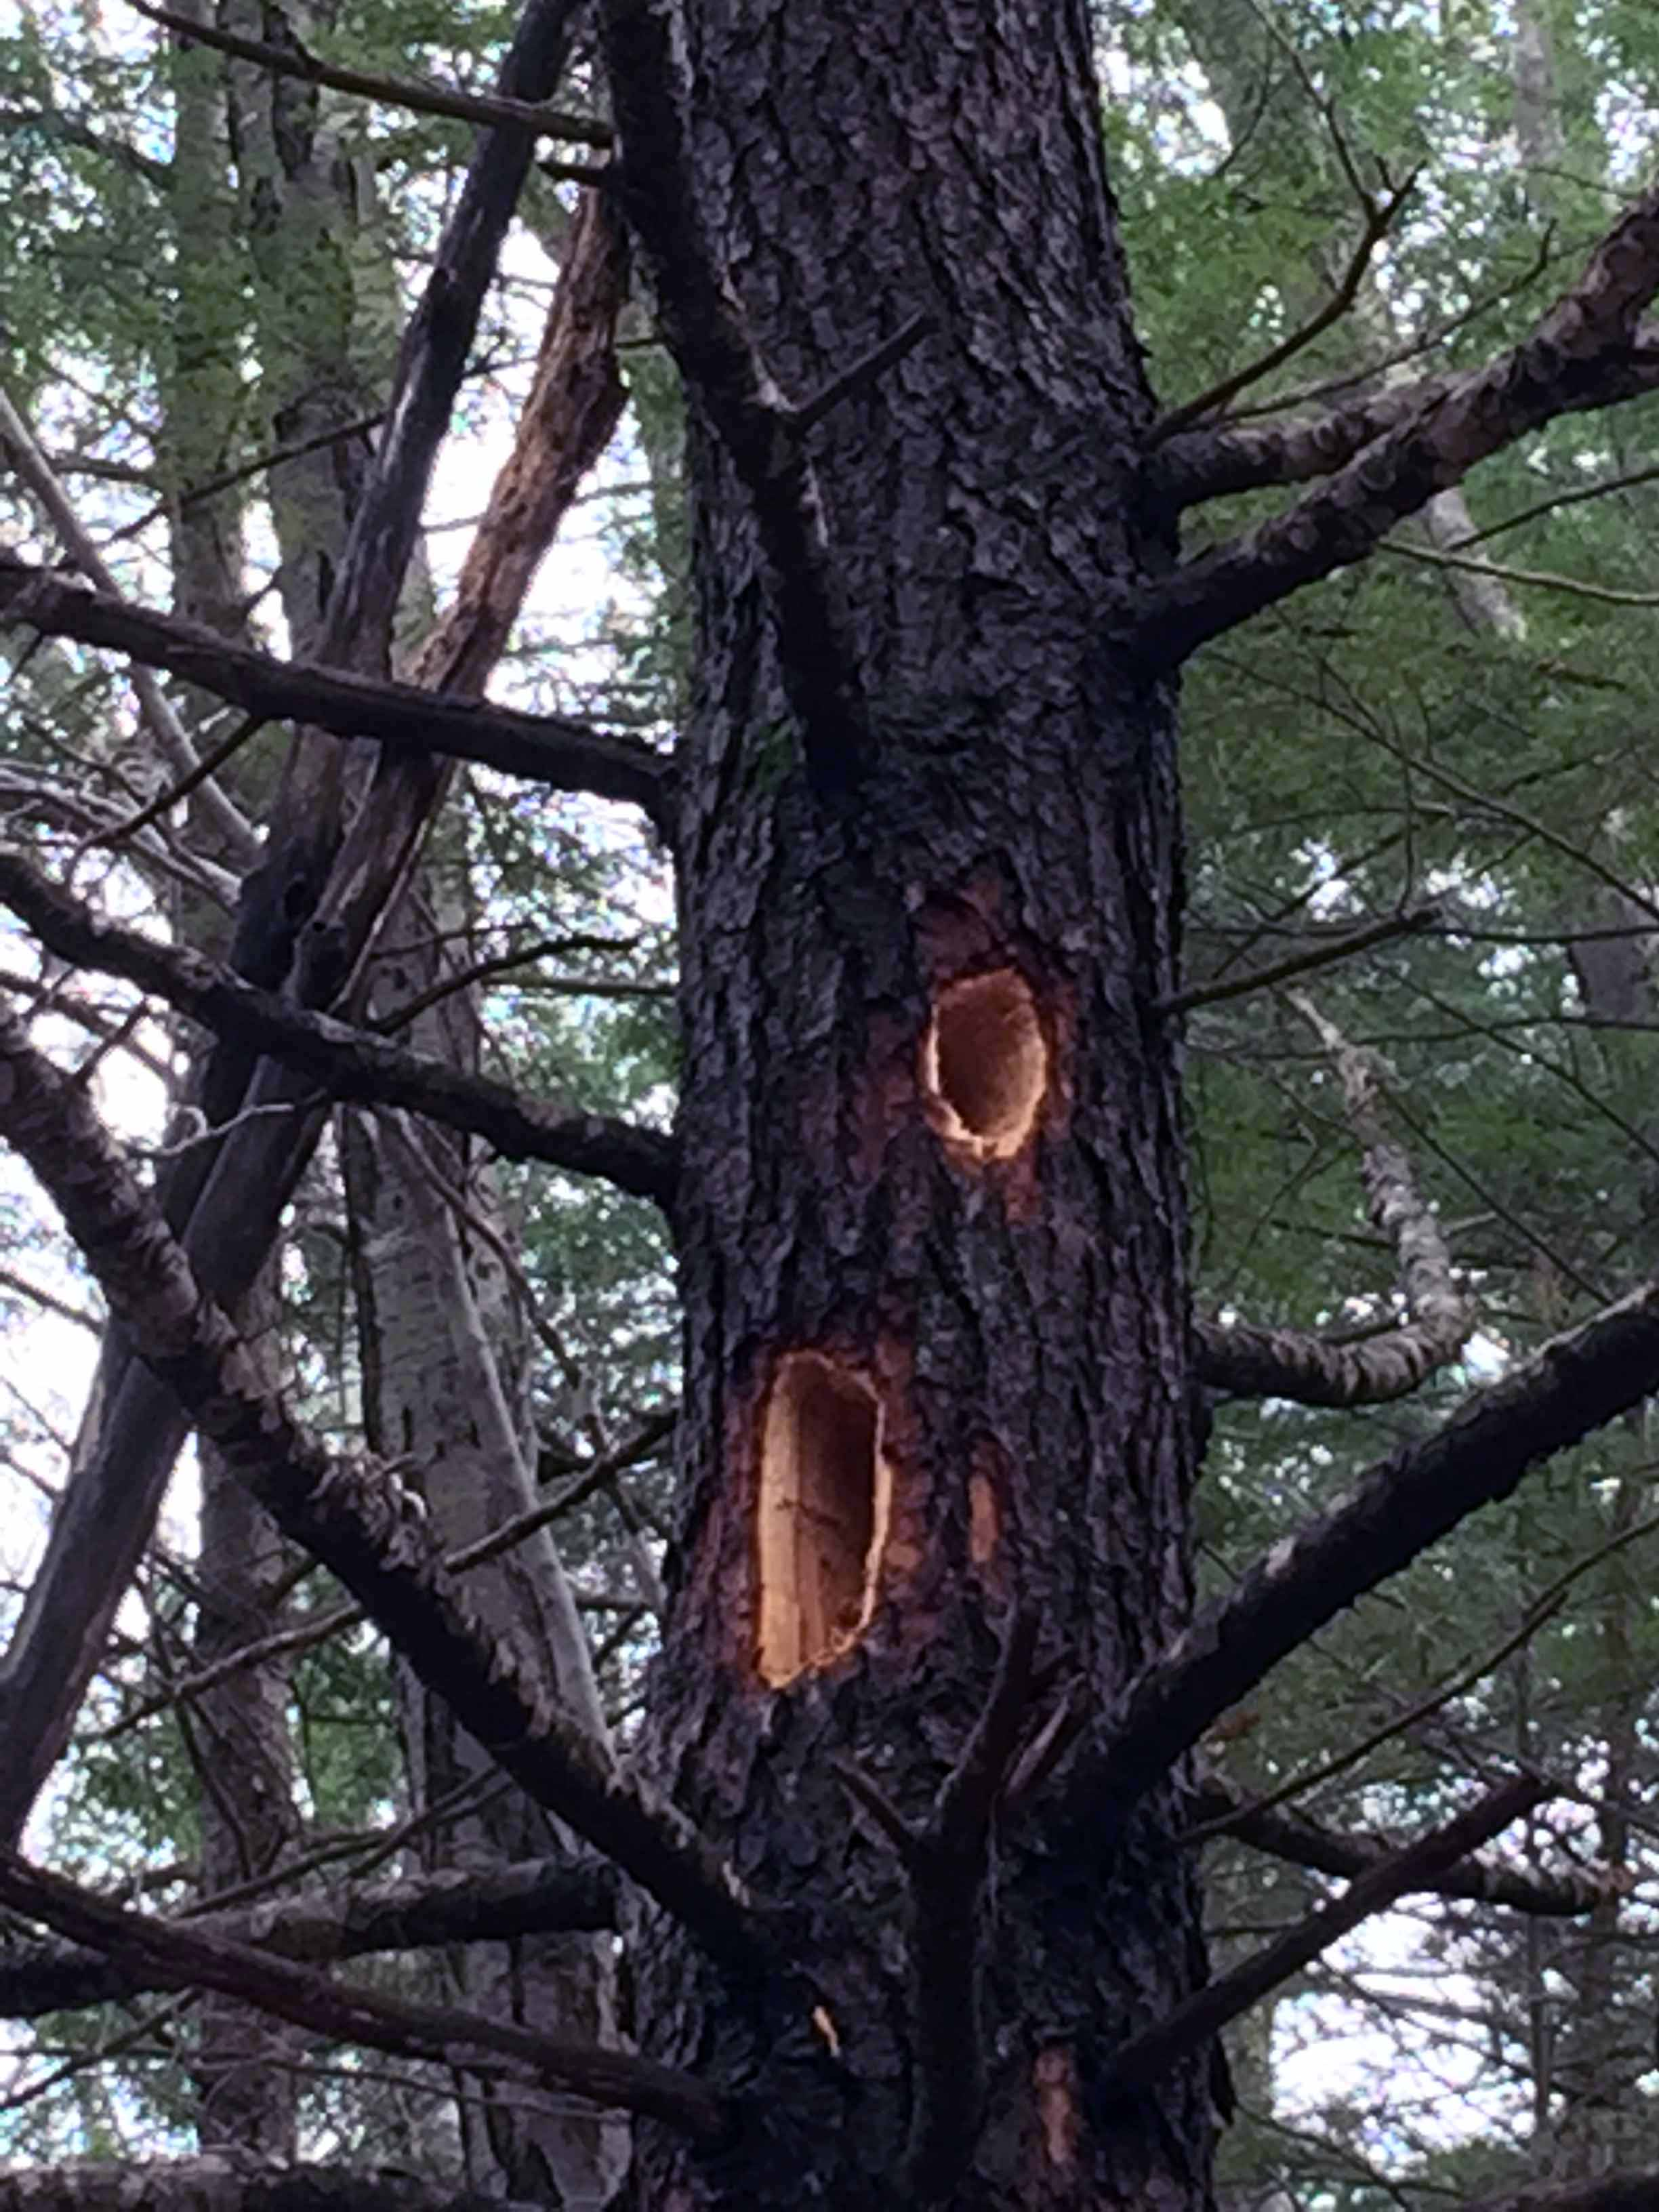 Holes bored by a Pileated Woodpecker